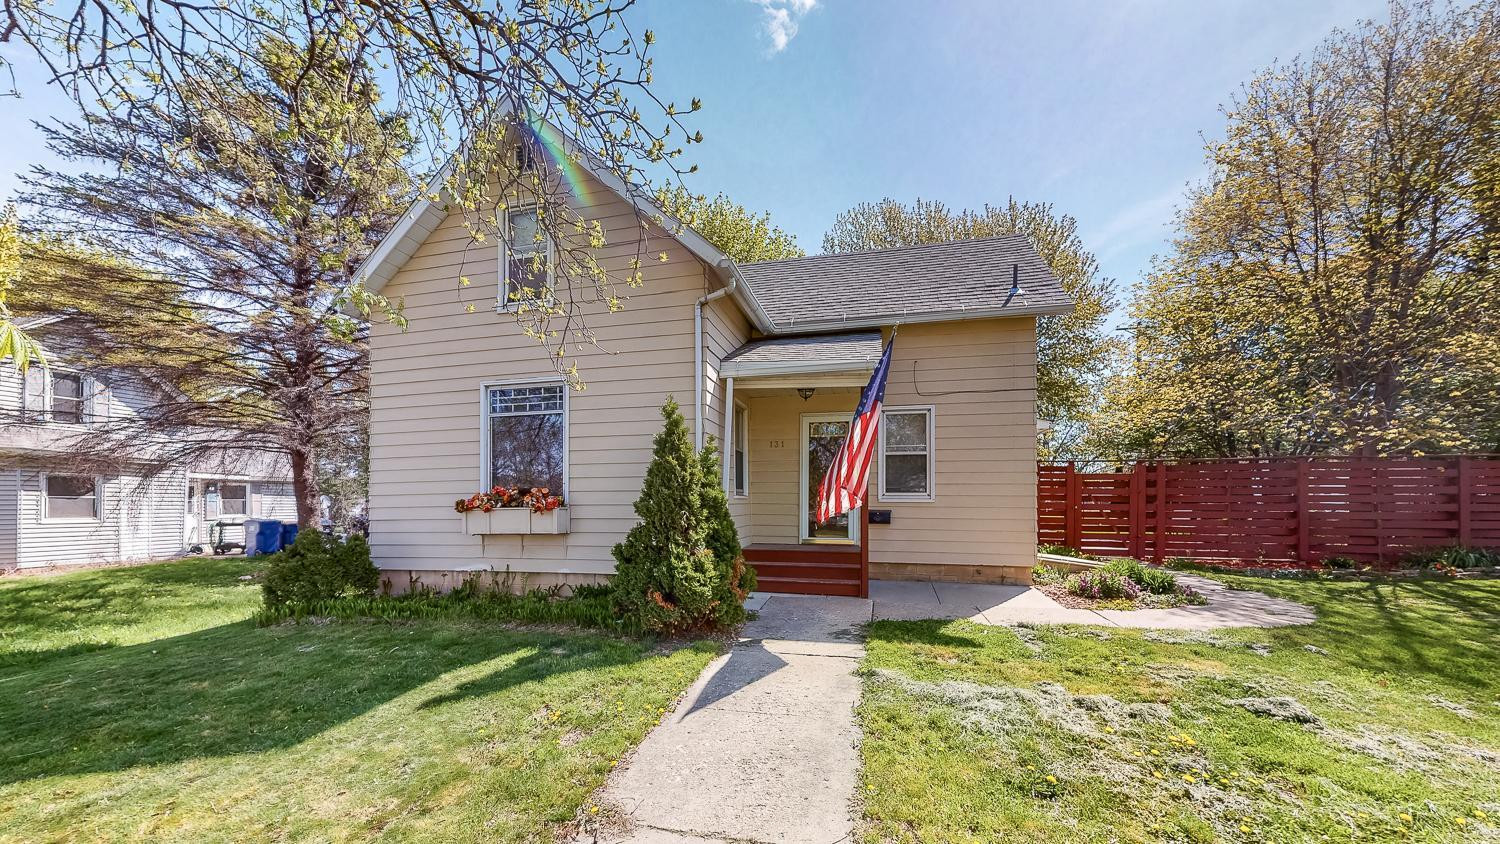 Home for sale 131 Red Wing Ave Kenyon MN 55946